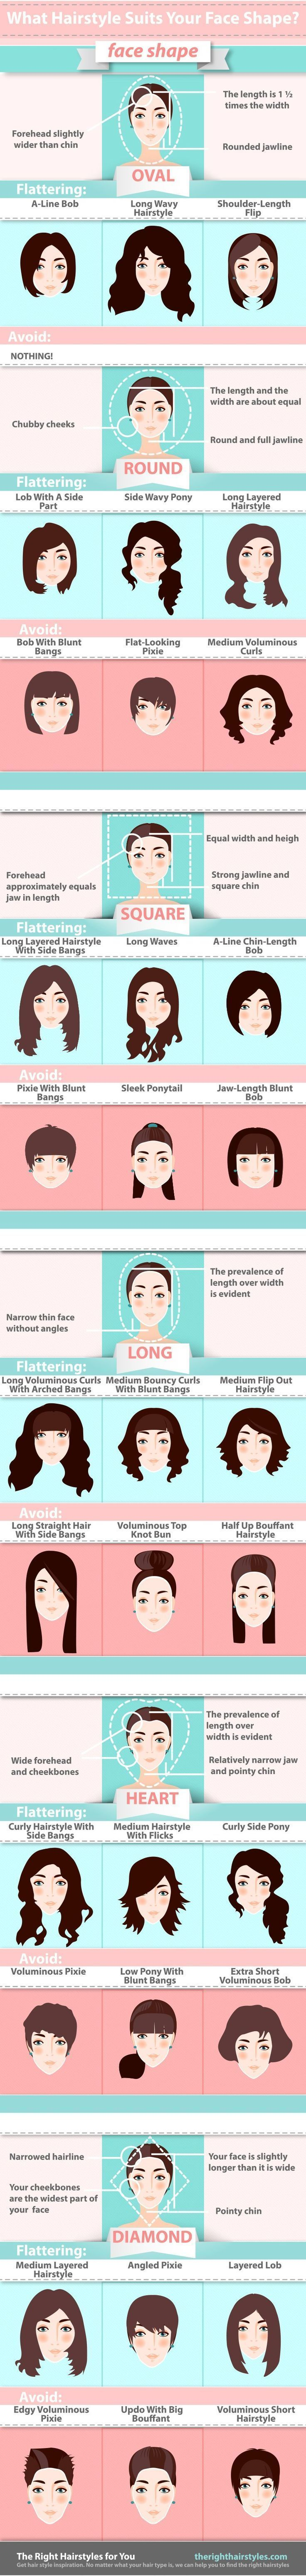 The Ultimate Hairstyle Guide For Your Face Shape | Makeup Tutorials